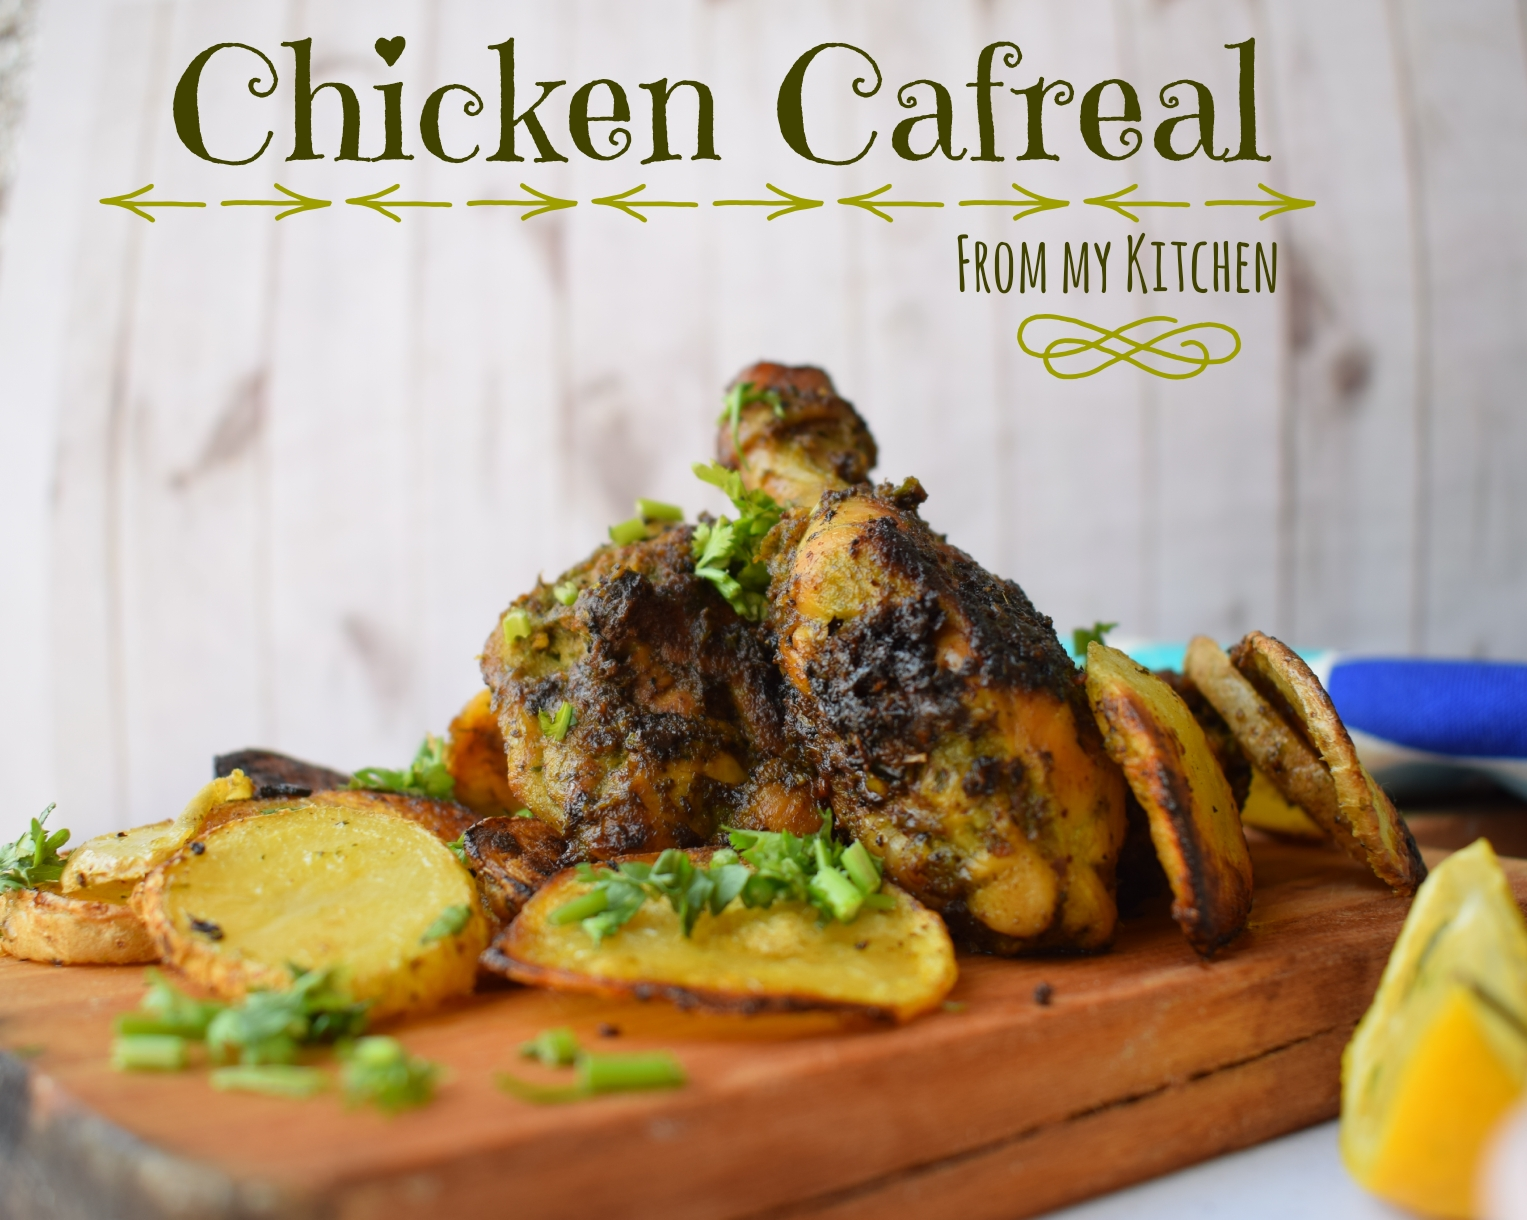 Chicken Cafreal